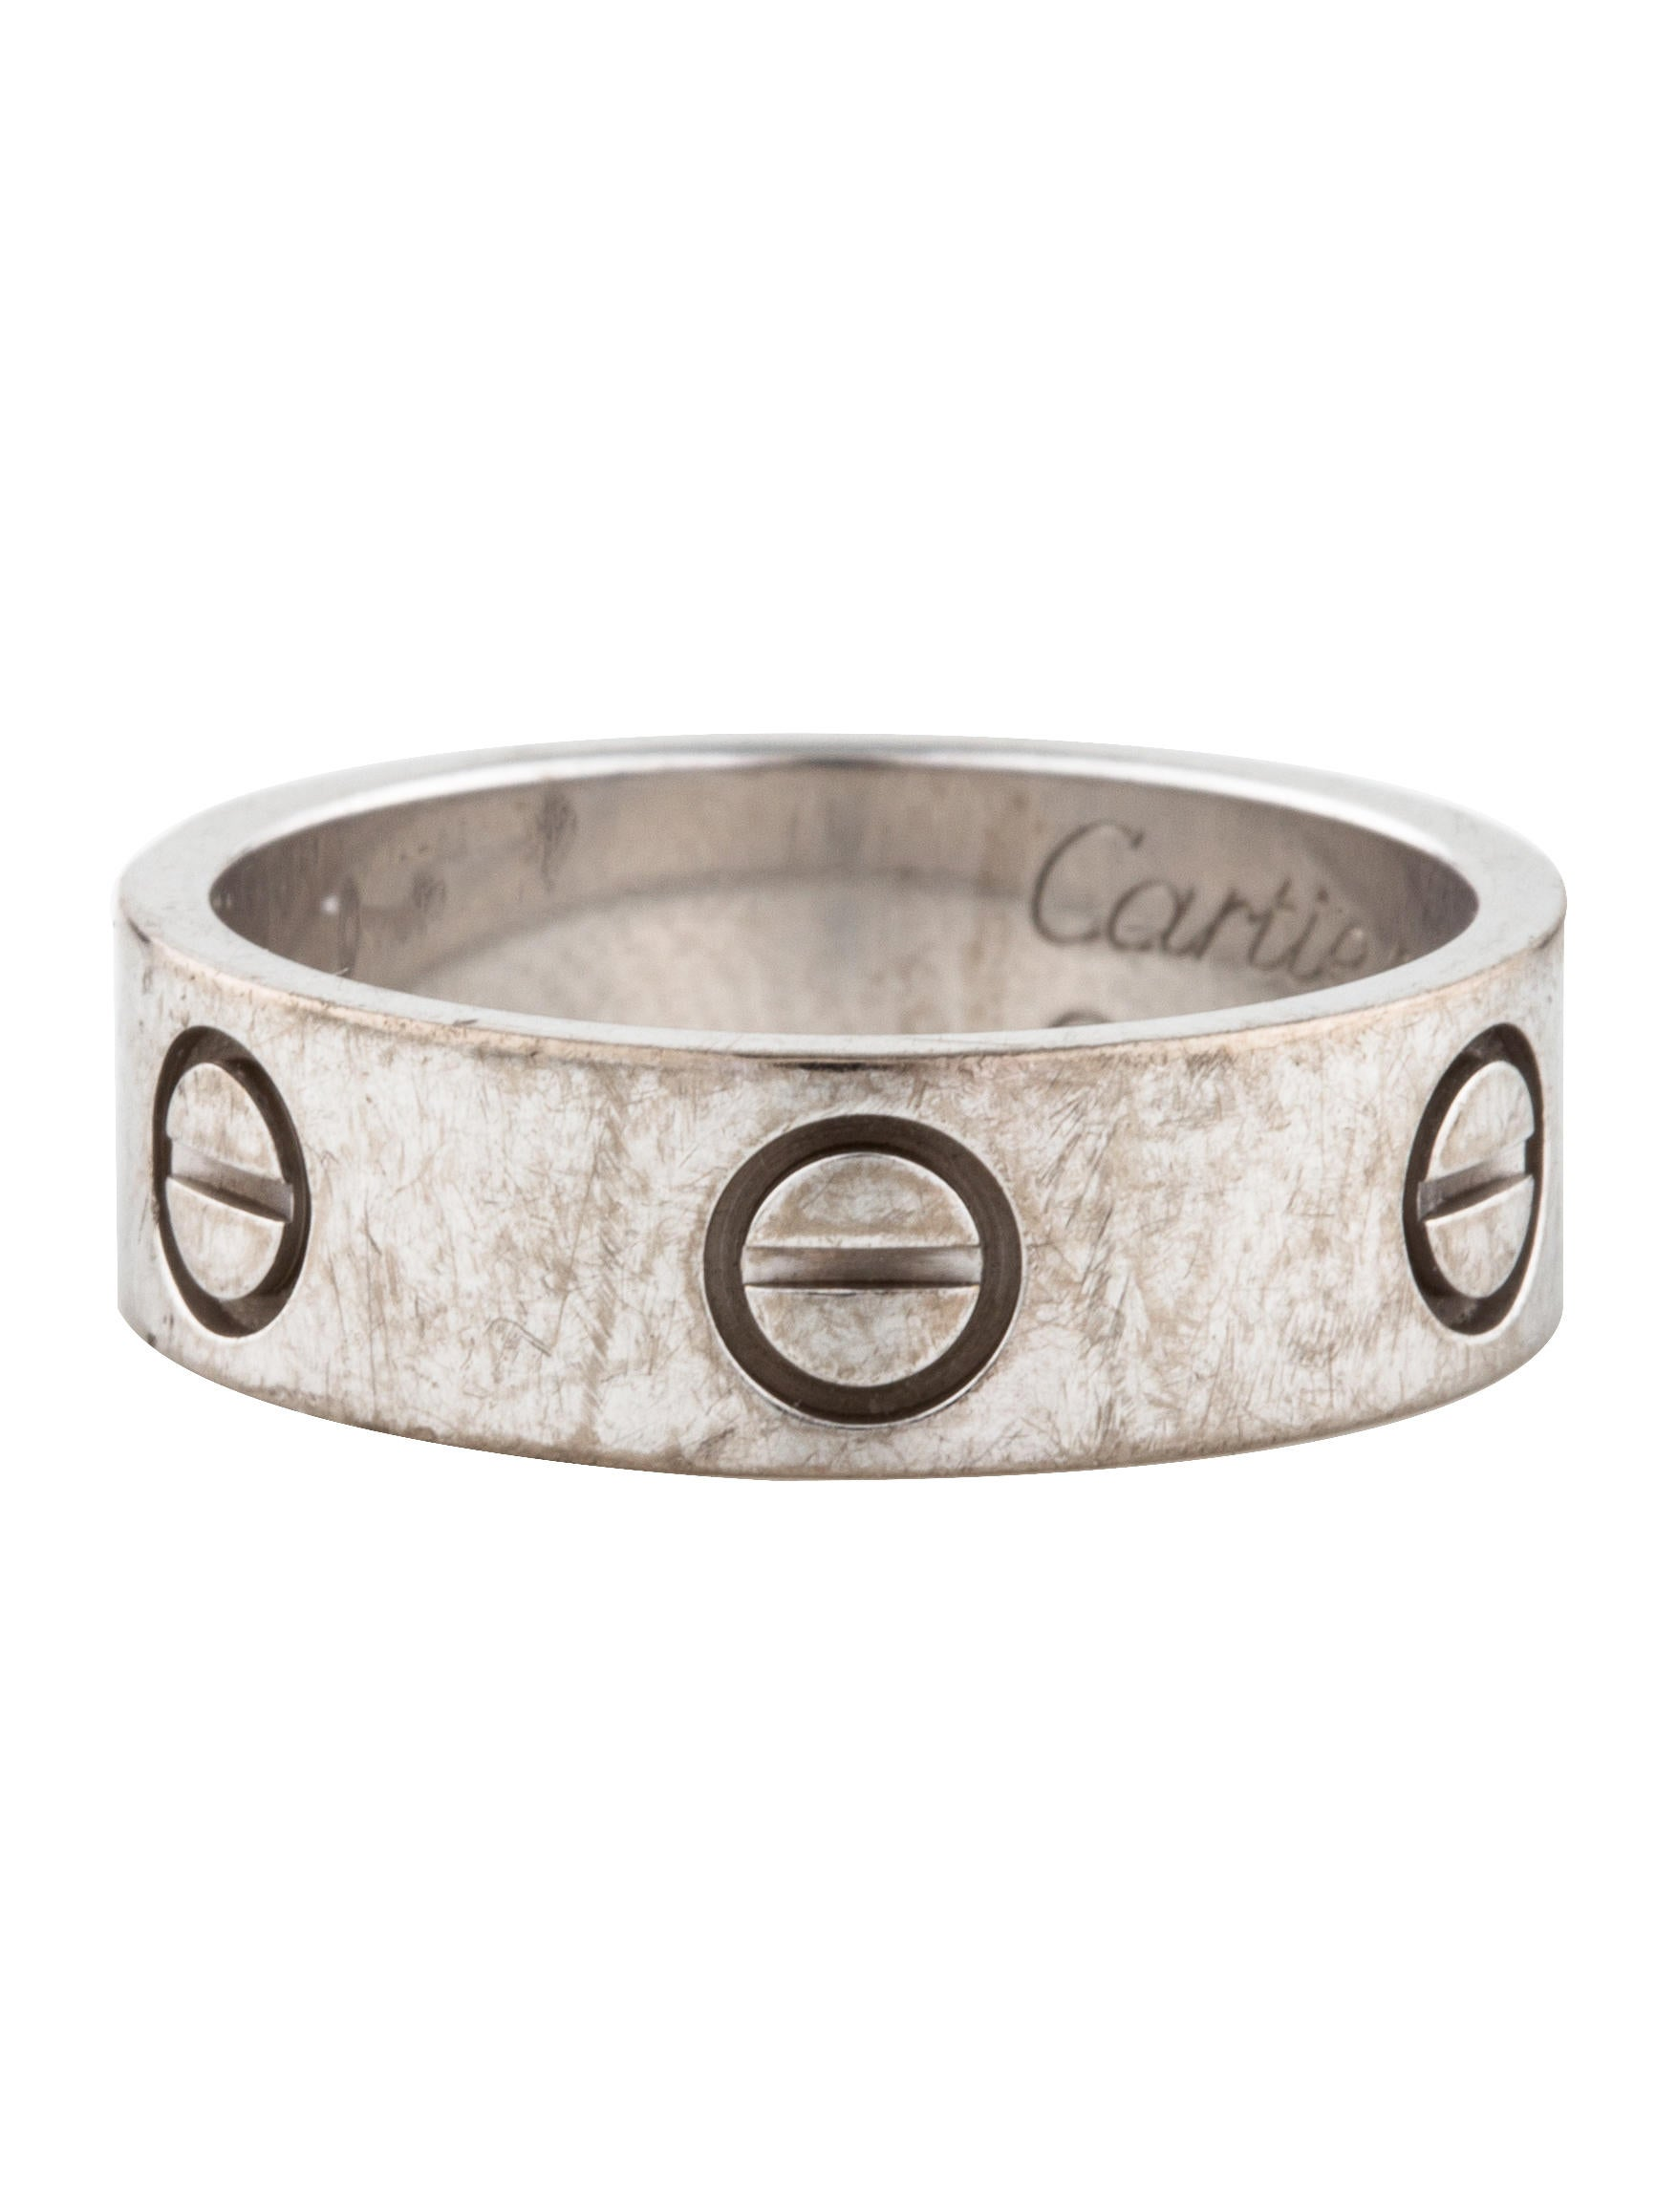 Cartier LOVE Ring - Rings - CRT34864 | The RealReal